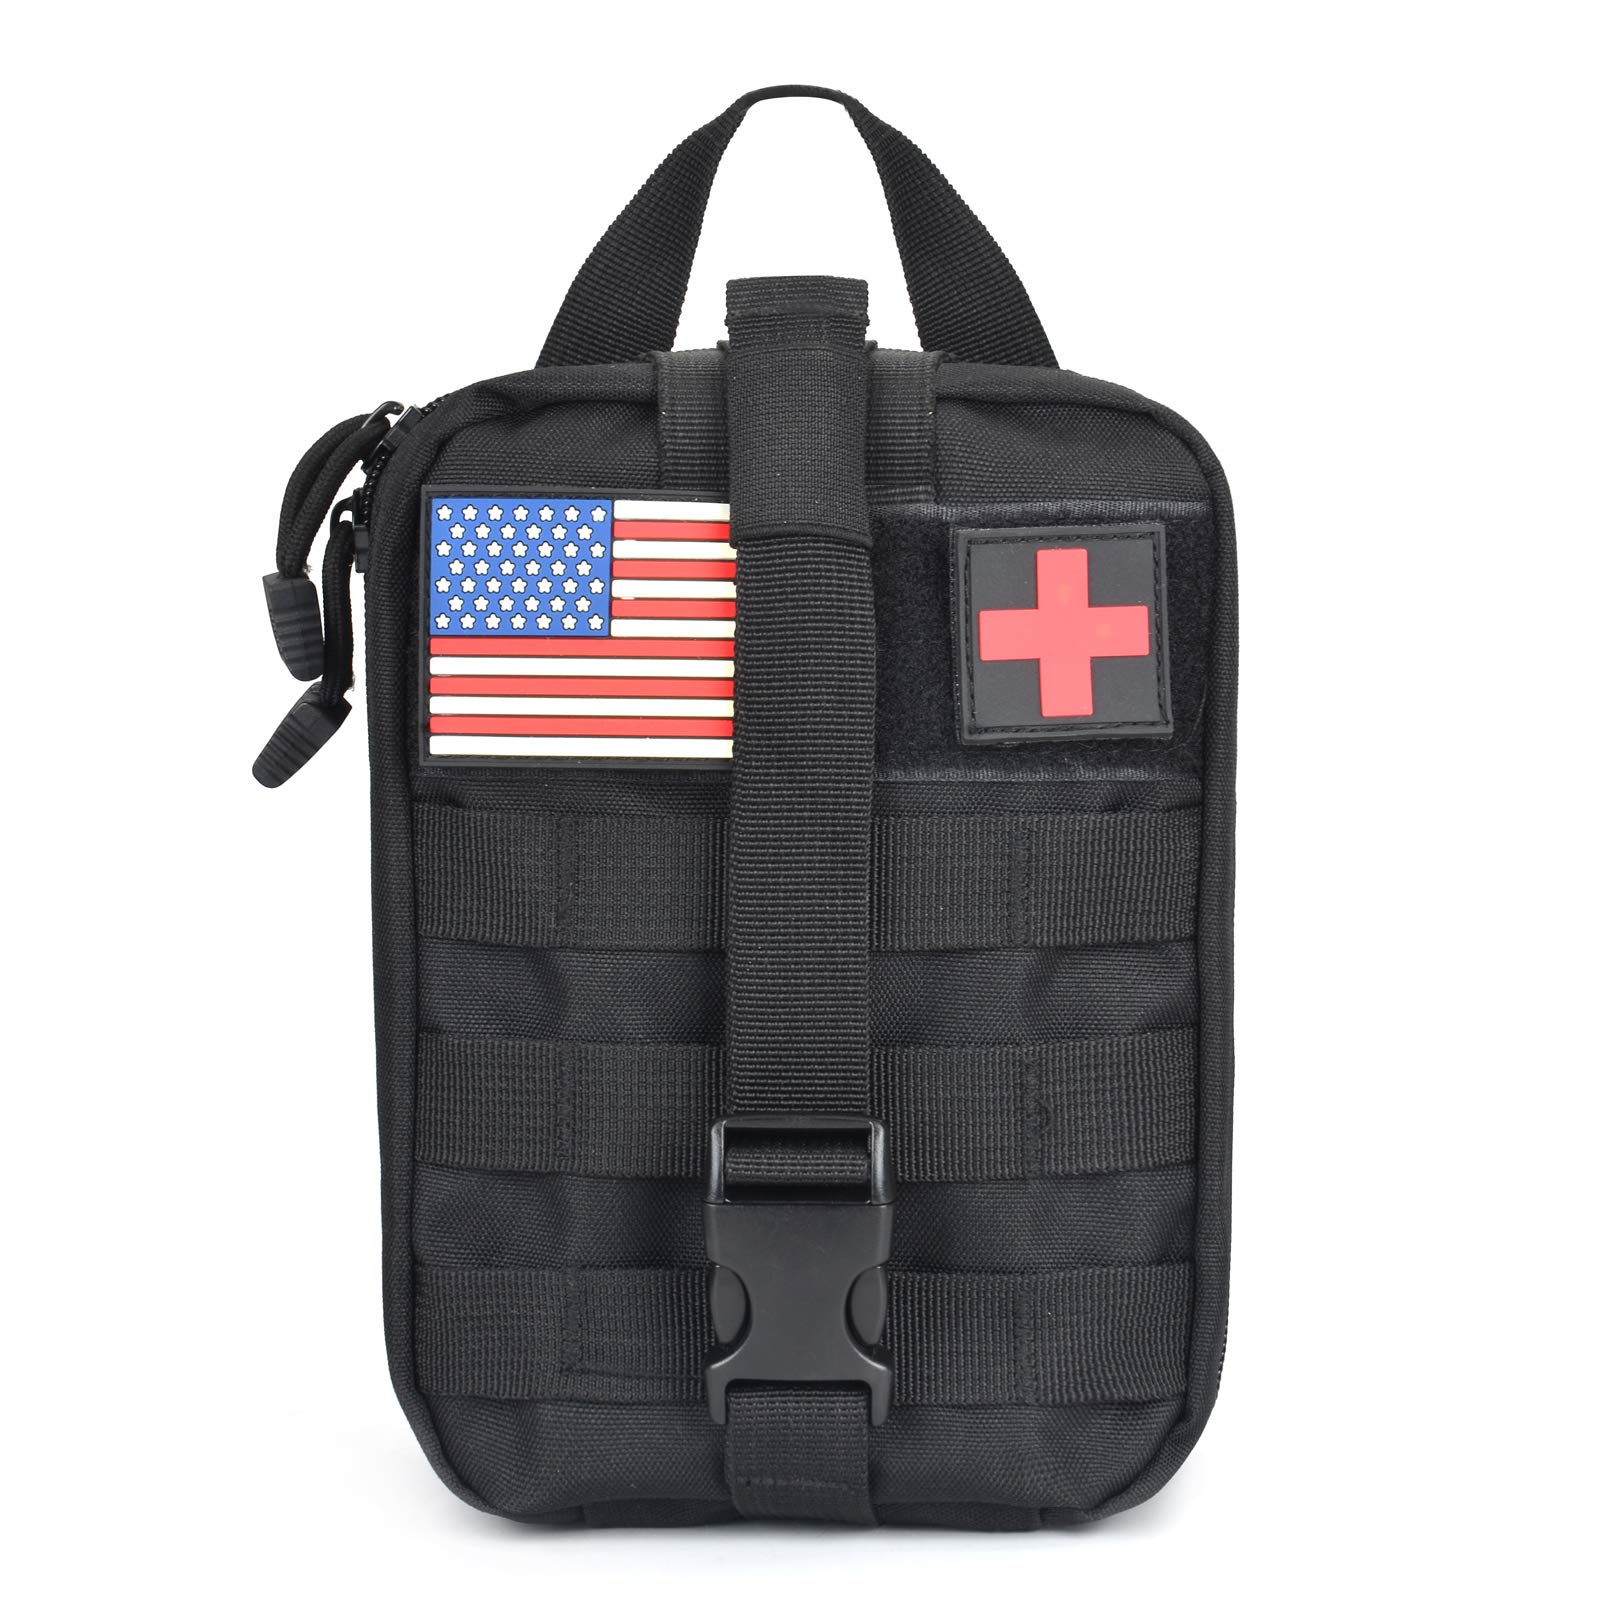 New Gear Expansion pack Medical Backpack MOLLE Medical Pouch EMT First Aid Pouch Rip-Away IFAK Tactical Utility Pouch for Outdoor Activities Medical Supplies